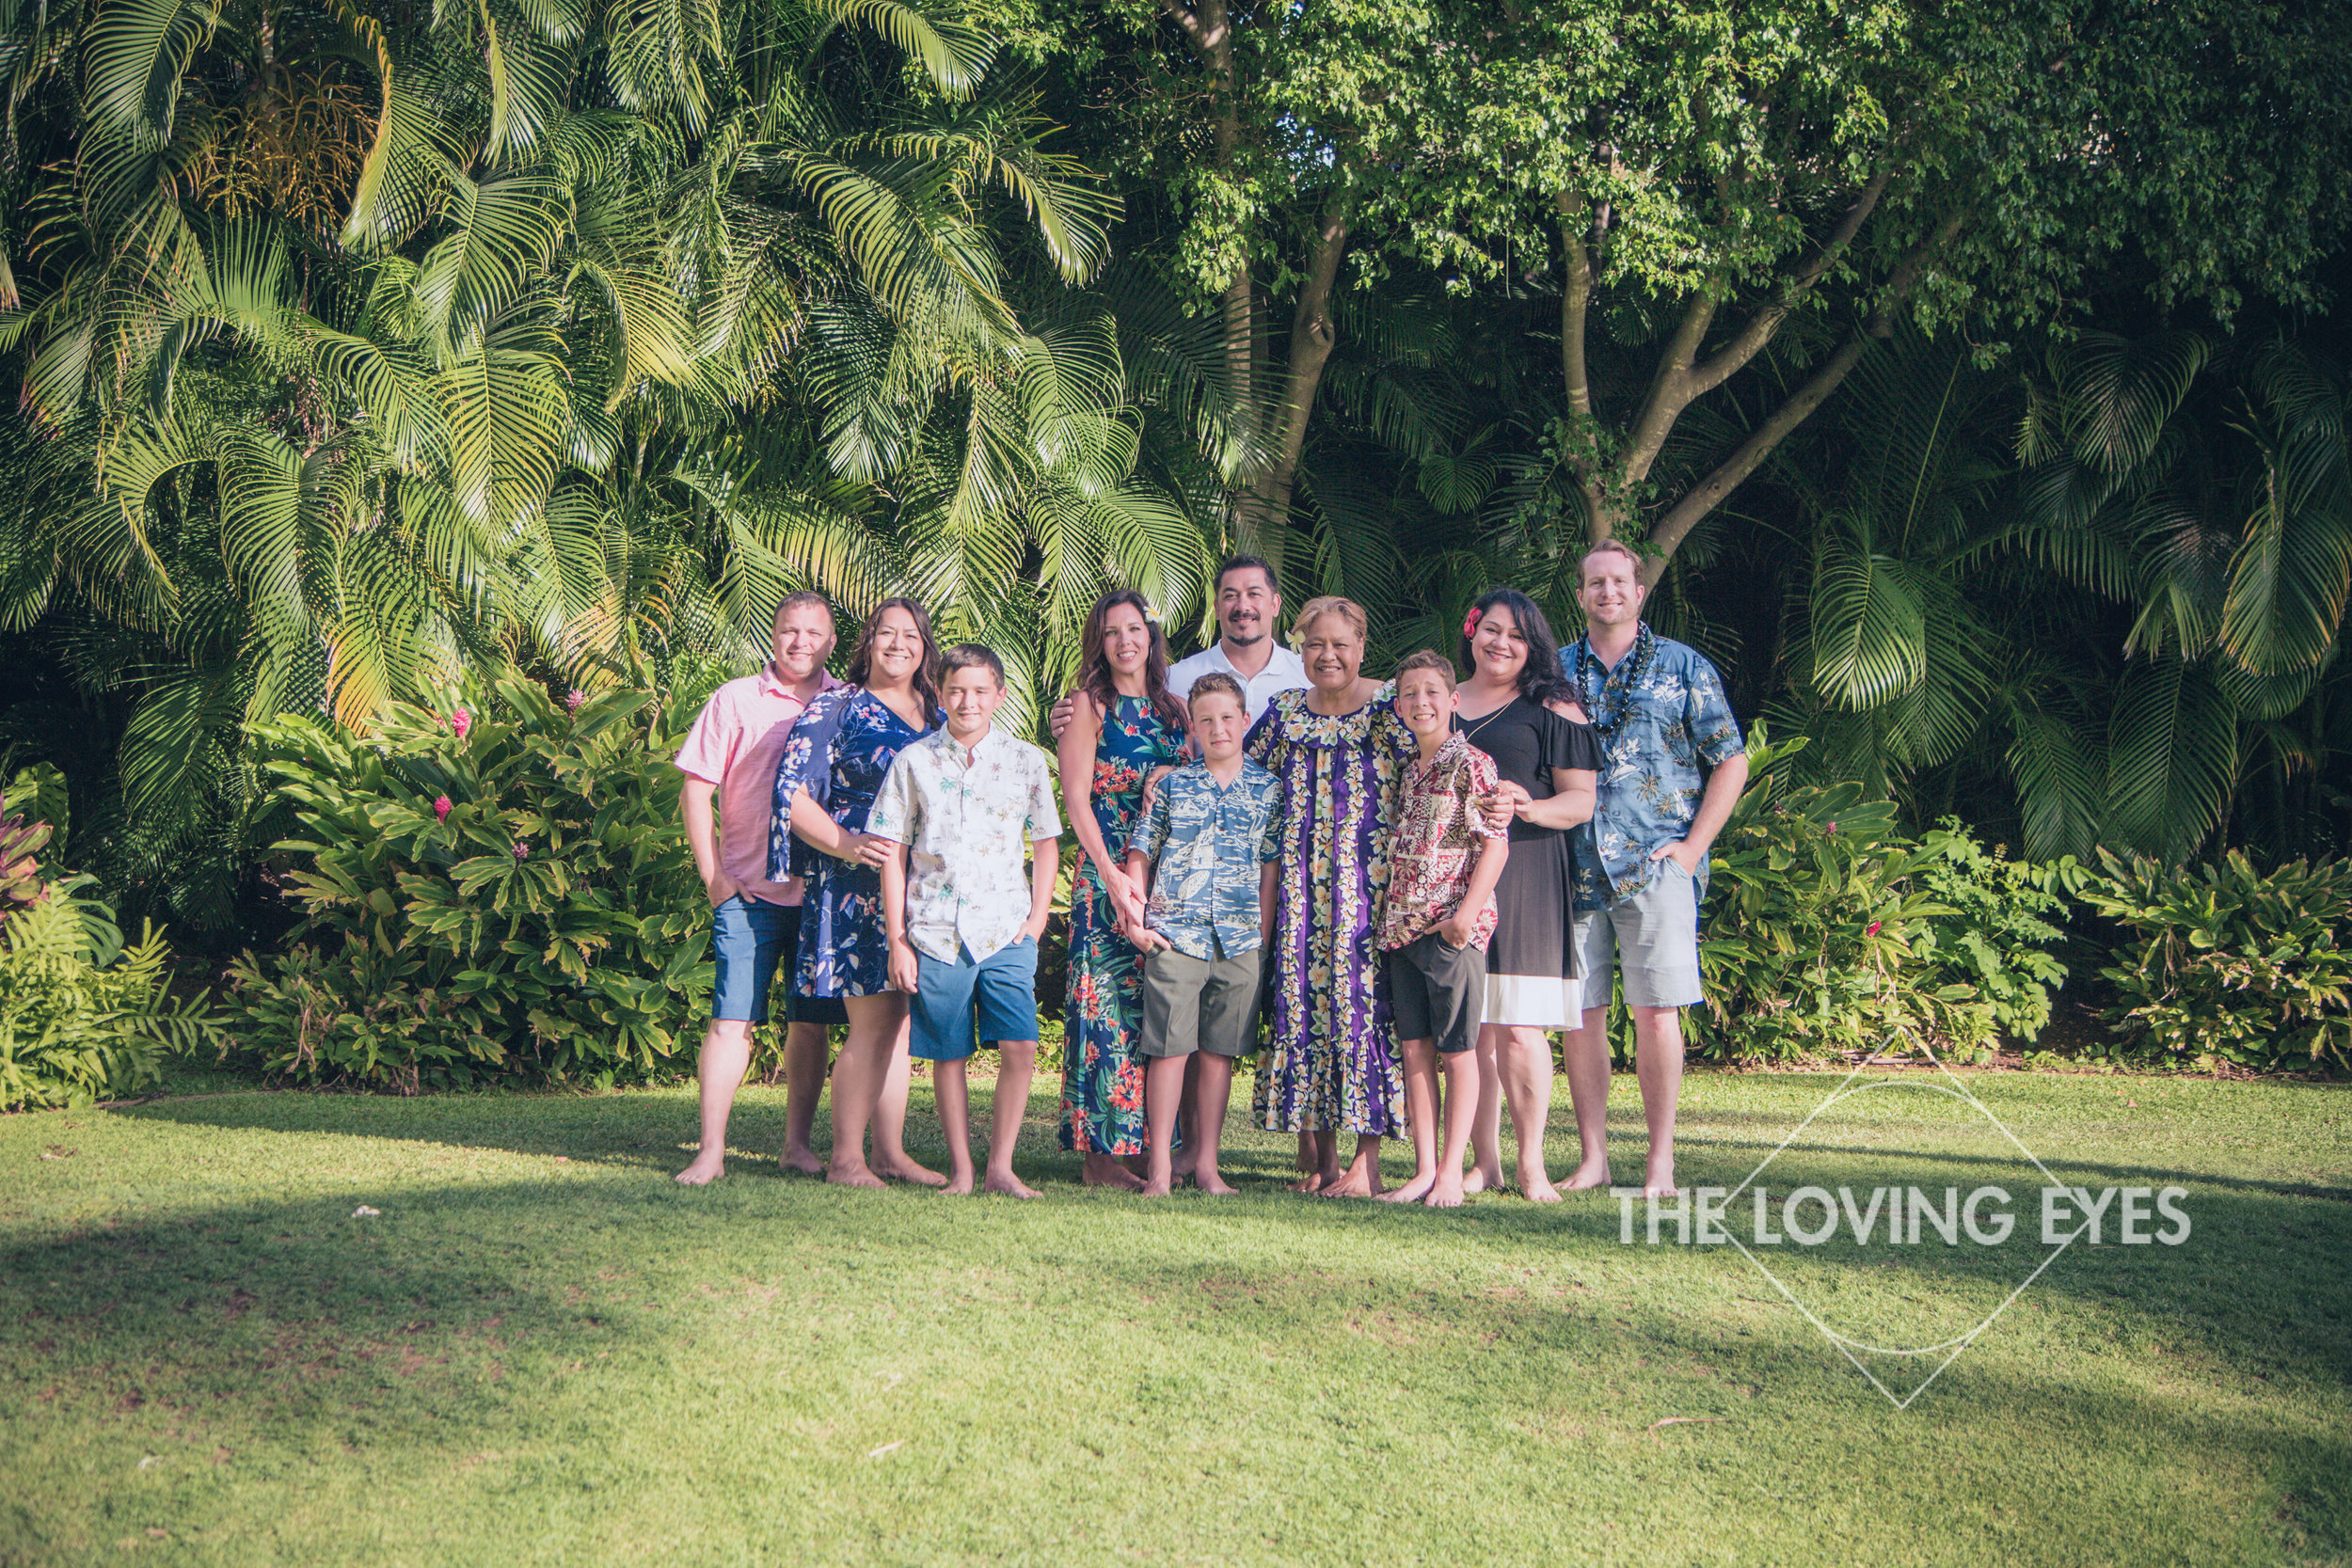 Multi-generational family portrait during a Hawaii vacation in the garden at the Hilton Hawaiian Village